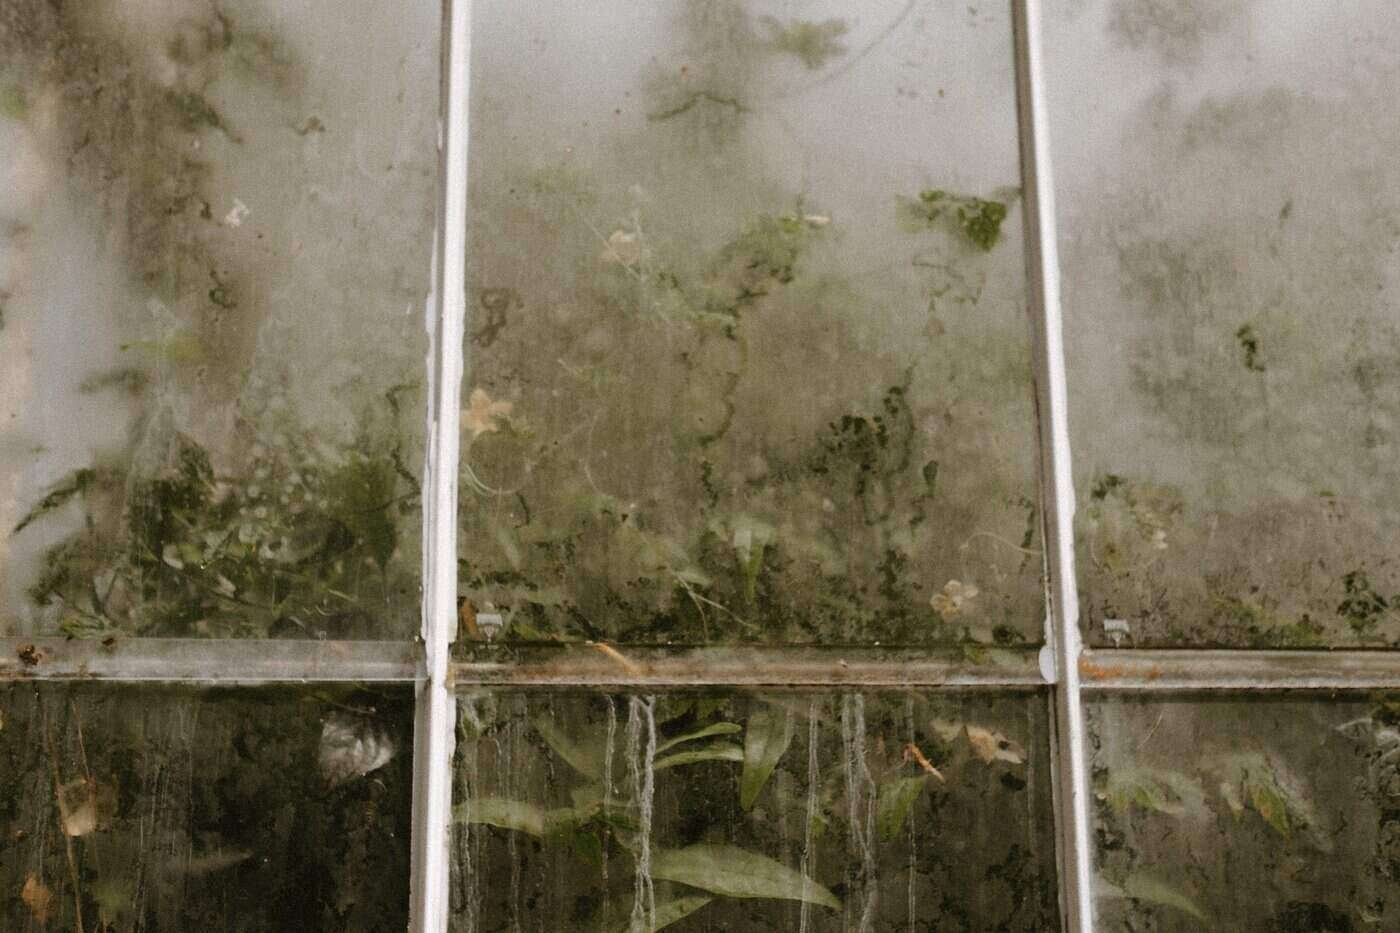 fogged greenhouse window with plants inside - how to ensure the longevity of your backyard greenhouse